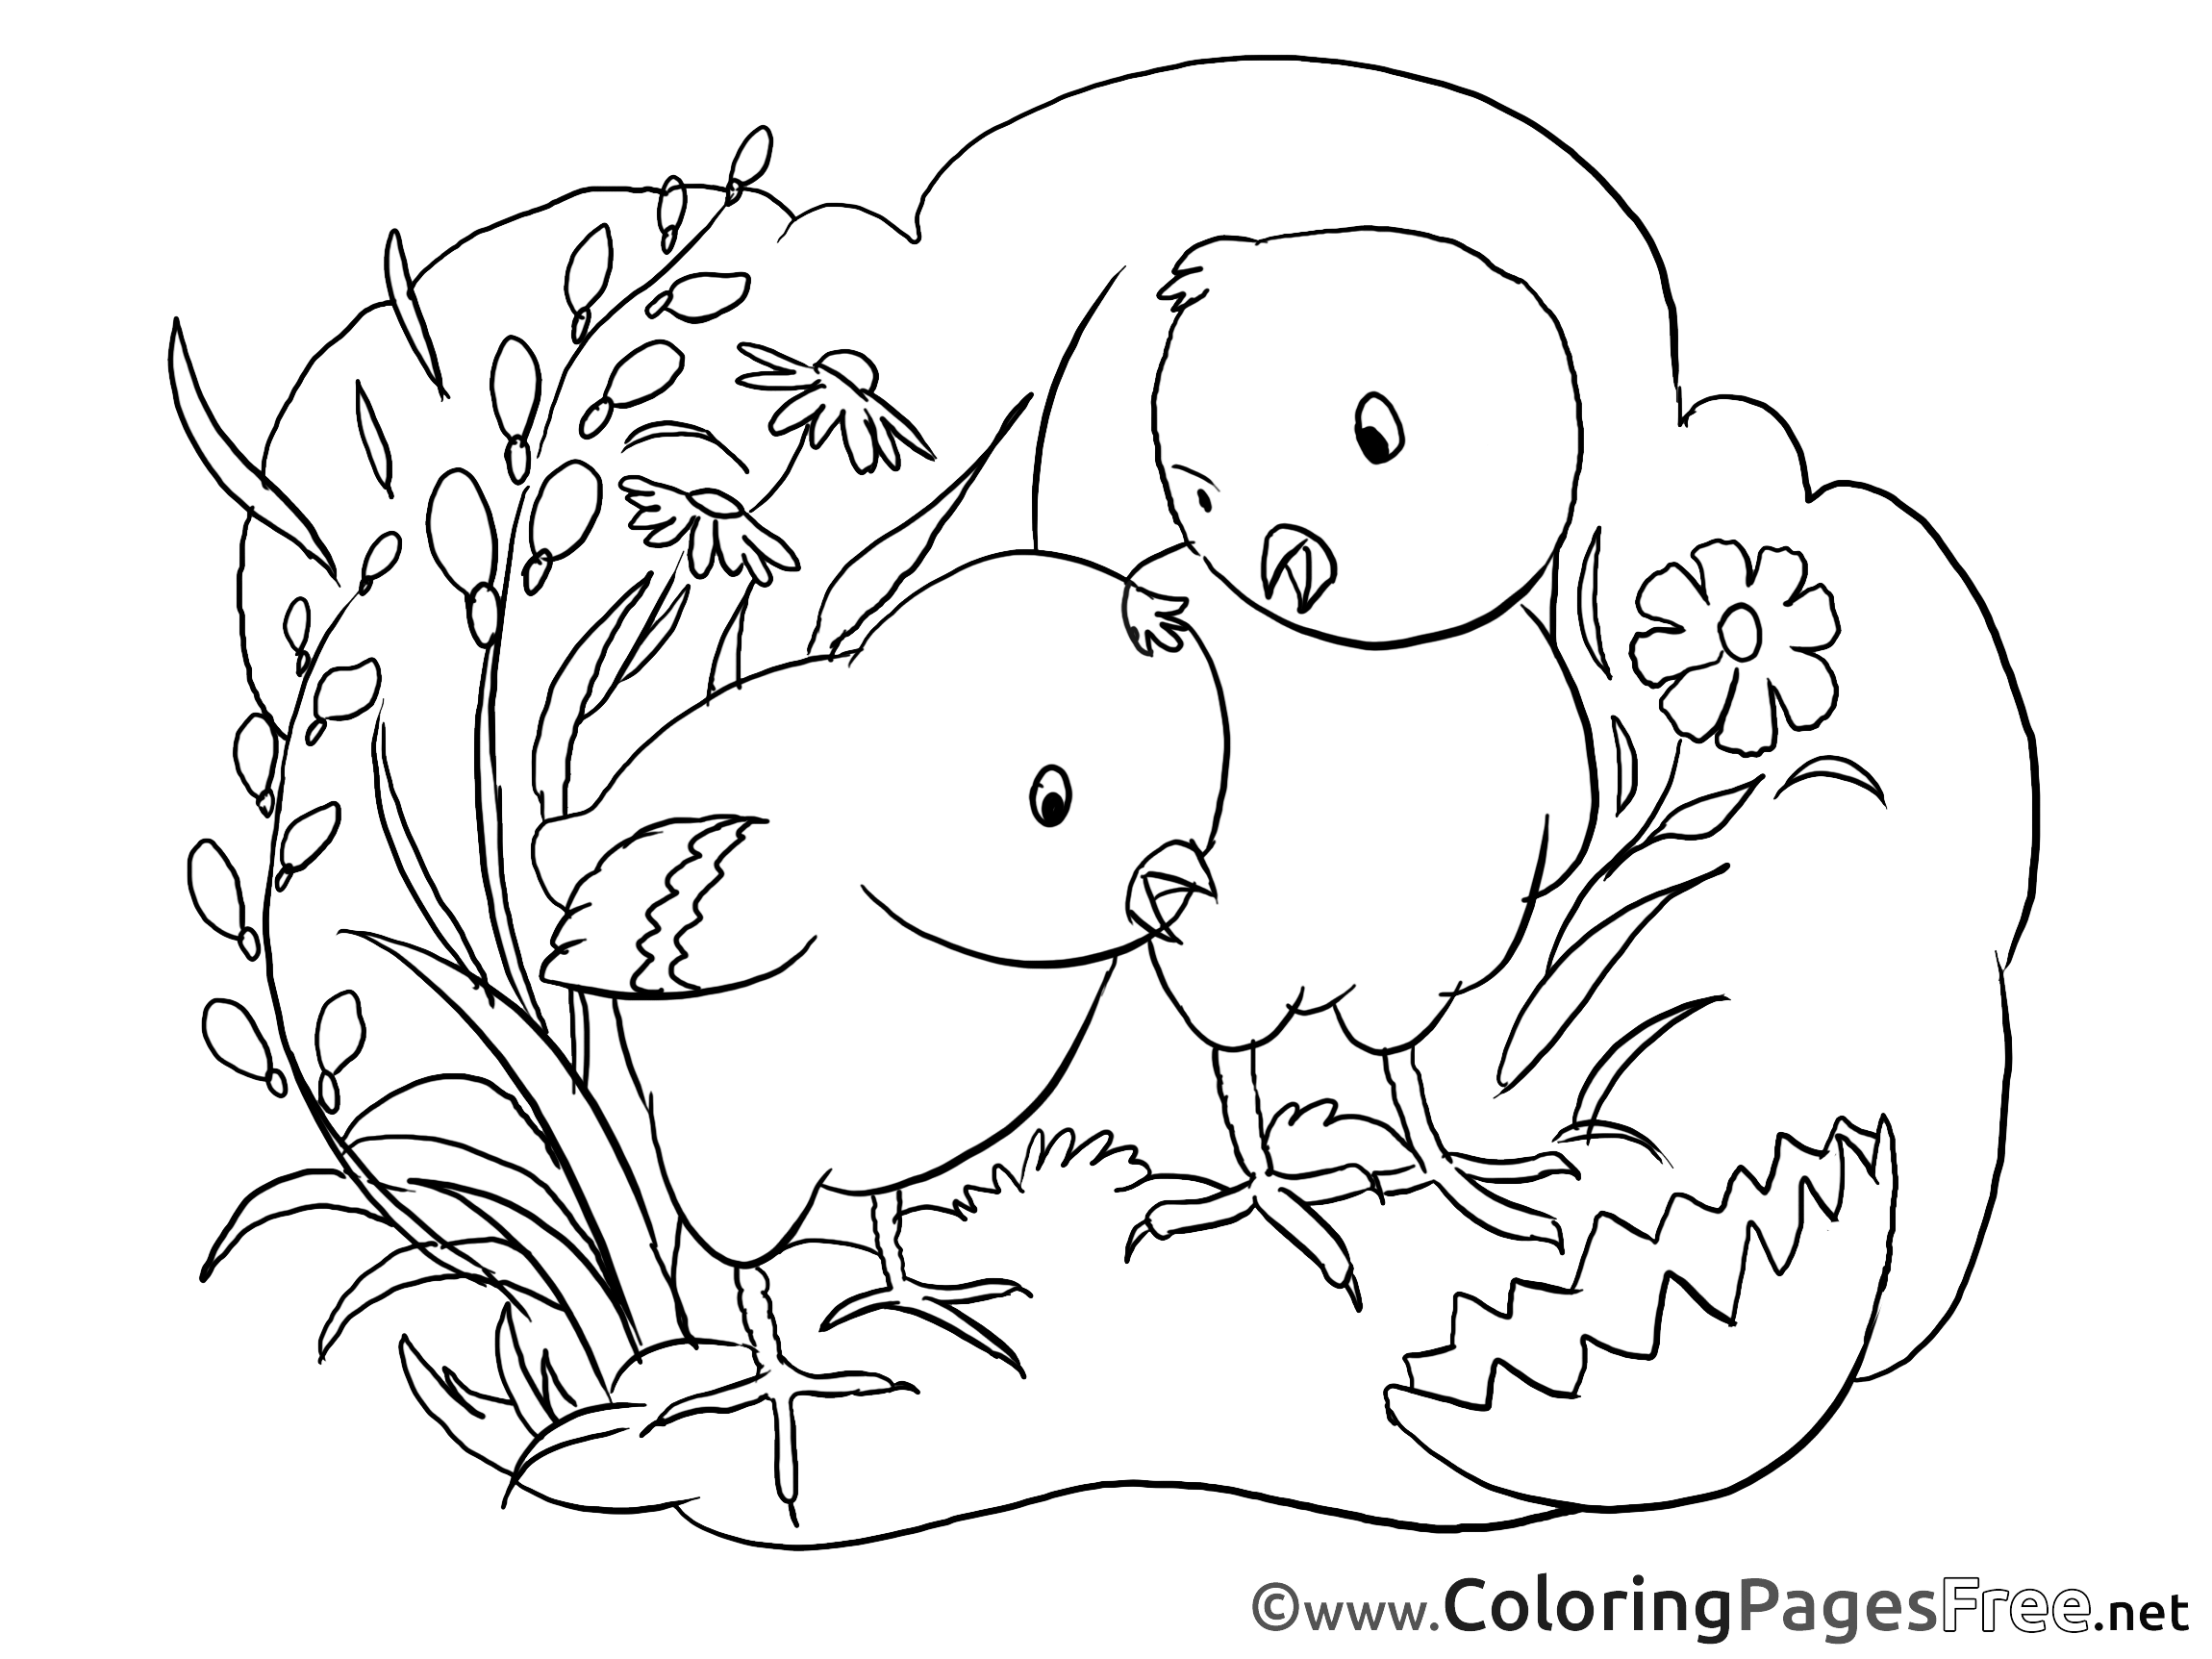 Free coloring pages chickens - Free Coloring Pages Chickens 44